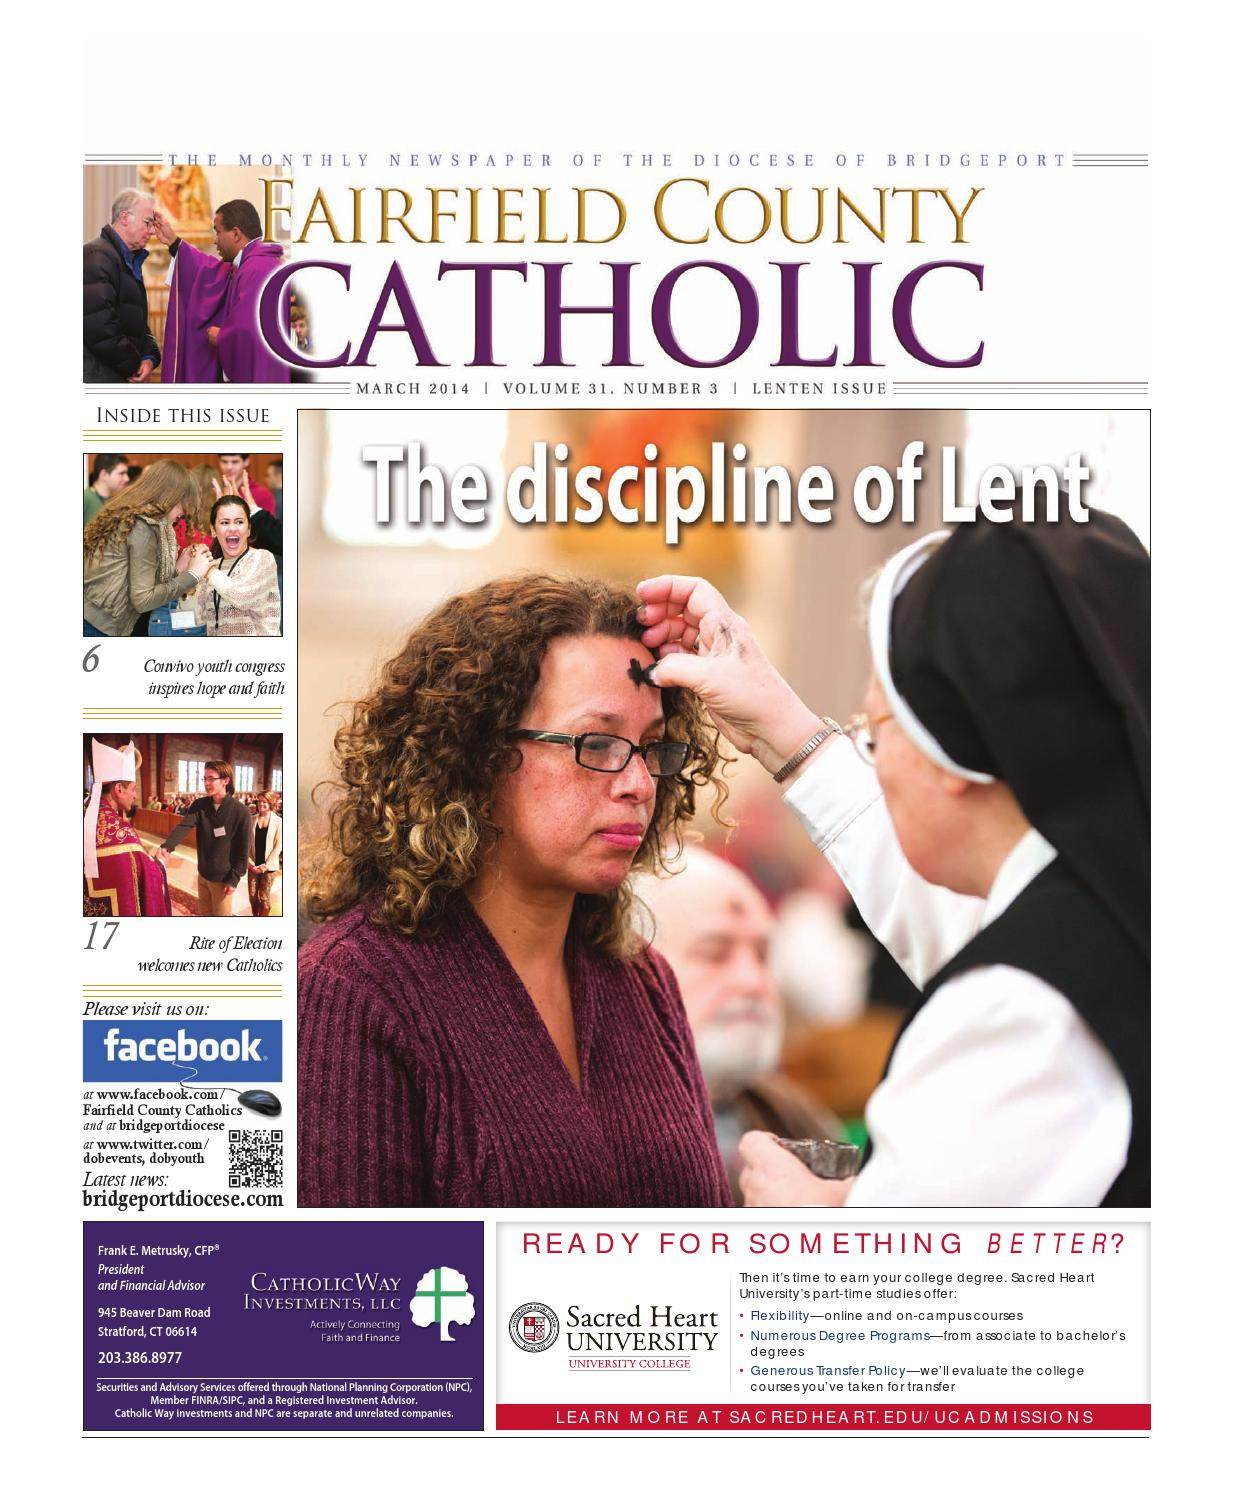 fairfield county catholic singles Please join the most reverend frank j caggiano and the board of catholic charities of fairfield county for a 100th anniversary celebratory mass & reception saturday, may 7 at 5:30pm mn.